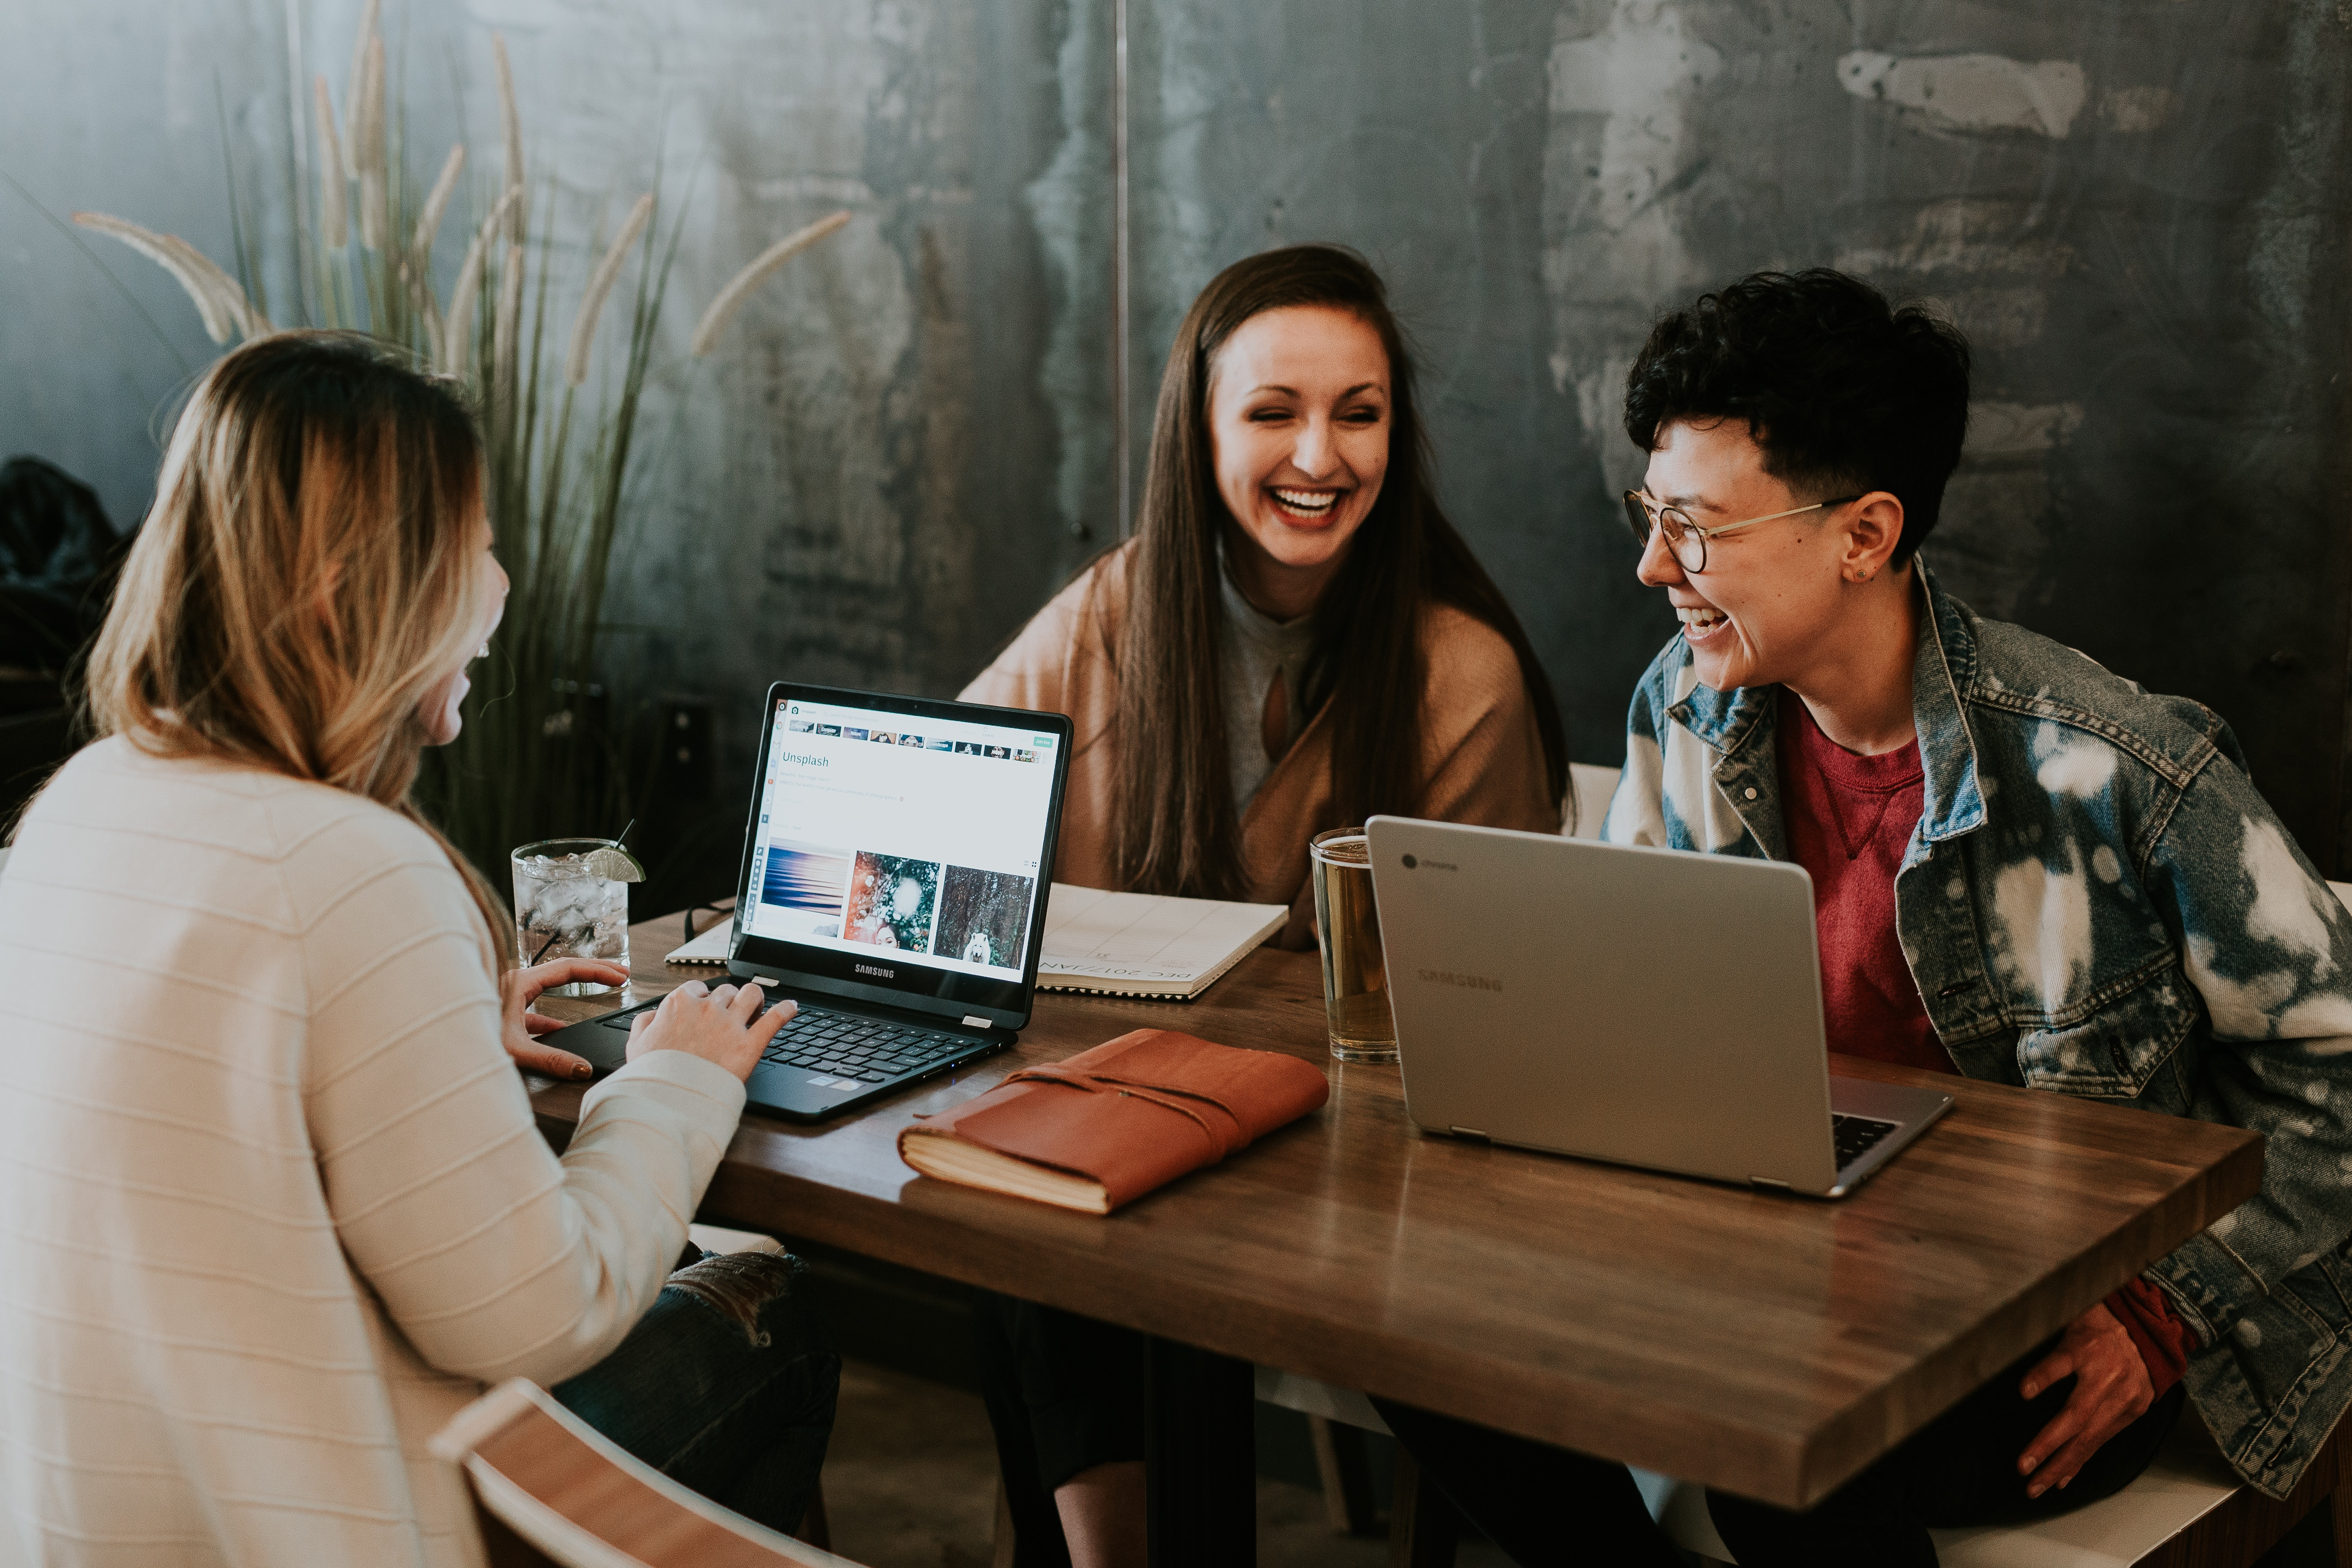 Work Obsessed Millenials and Today's Hustle Culture